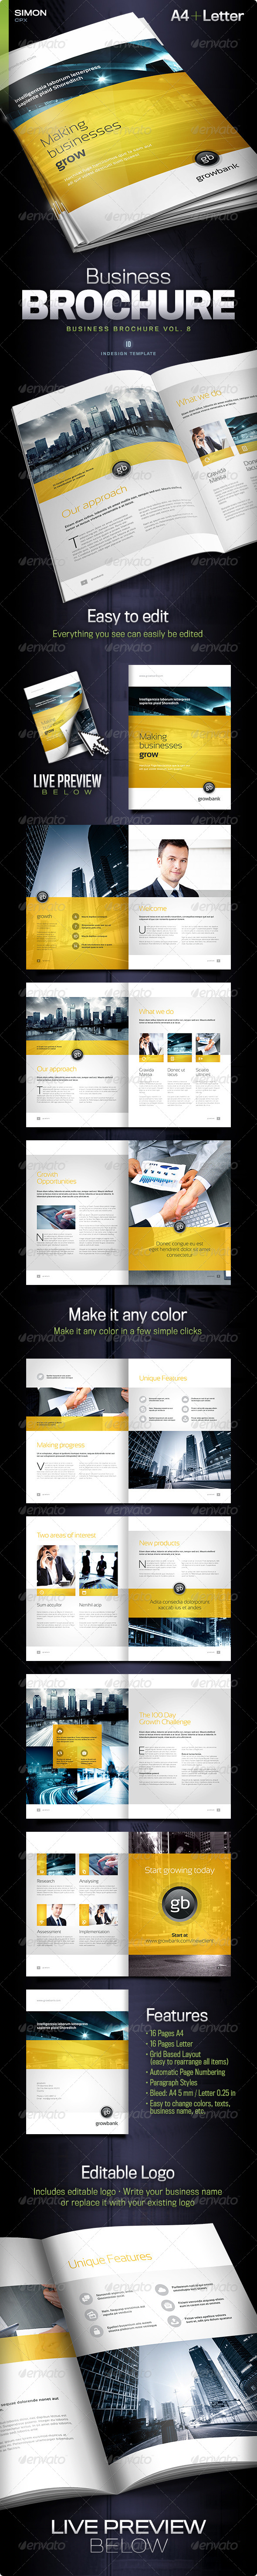 GraphicRiver Business Brochure Vol 8 5786018